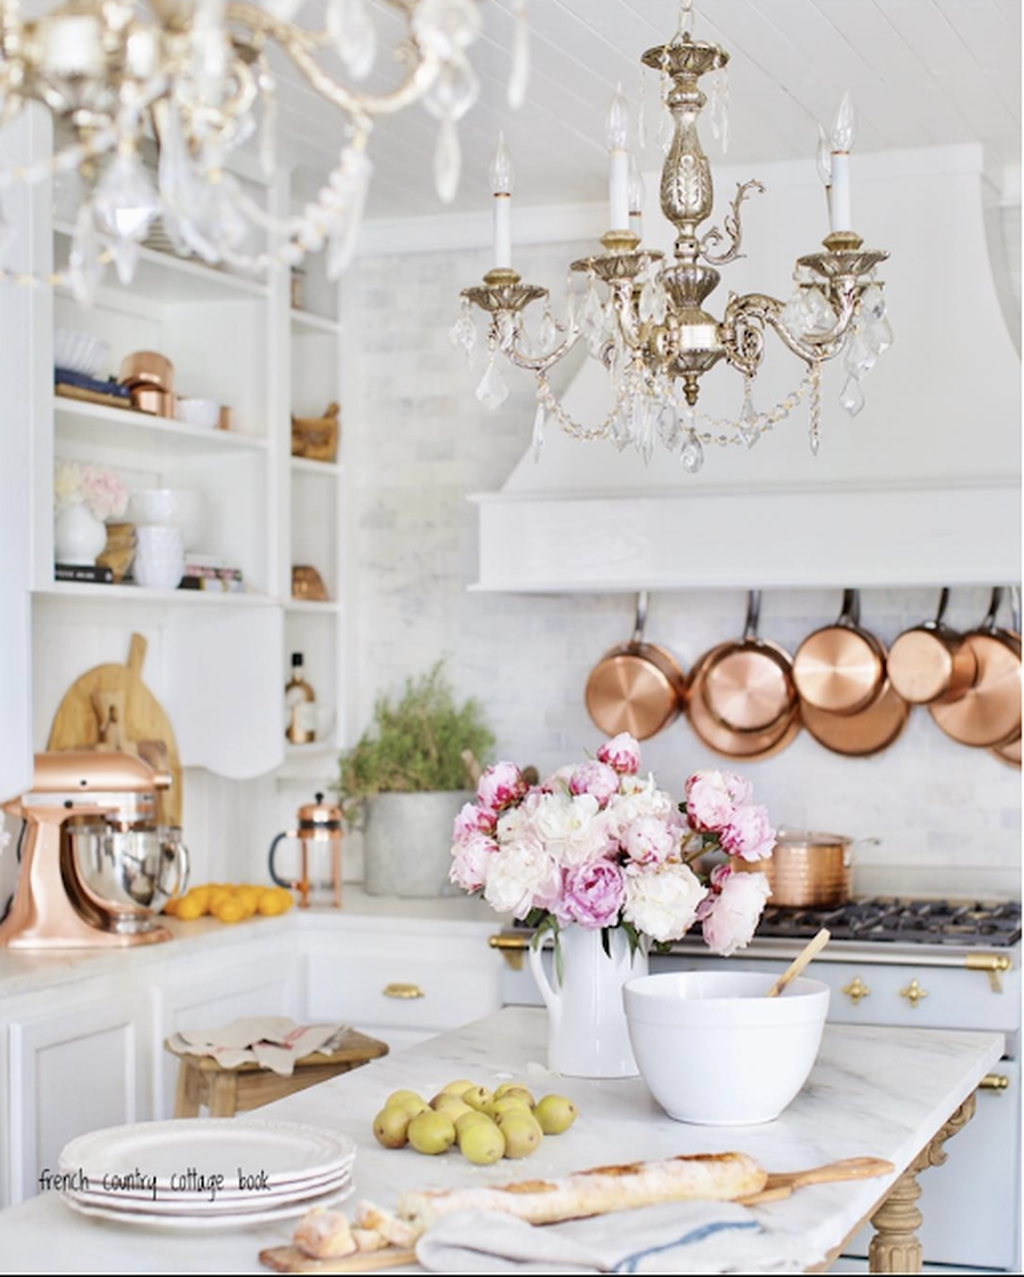 The Best French Country Style Kitchen Decor Ideas 28